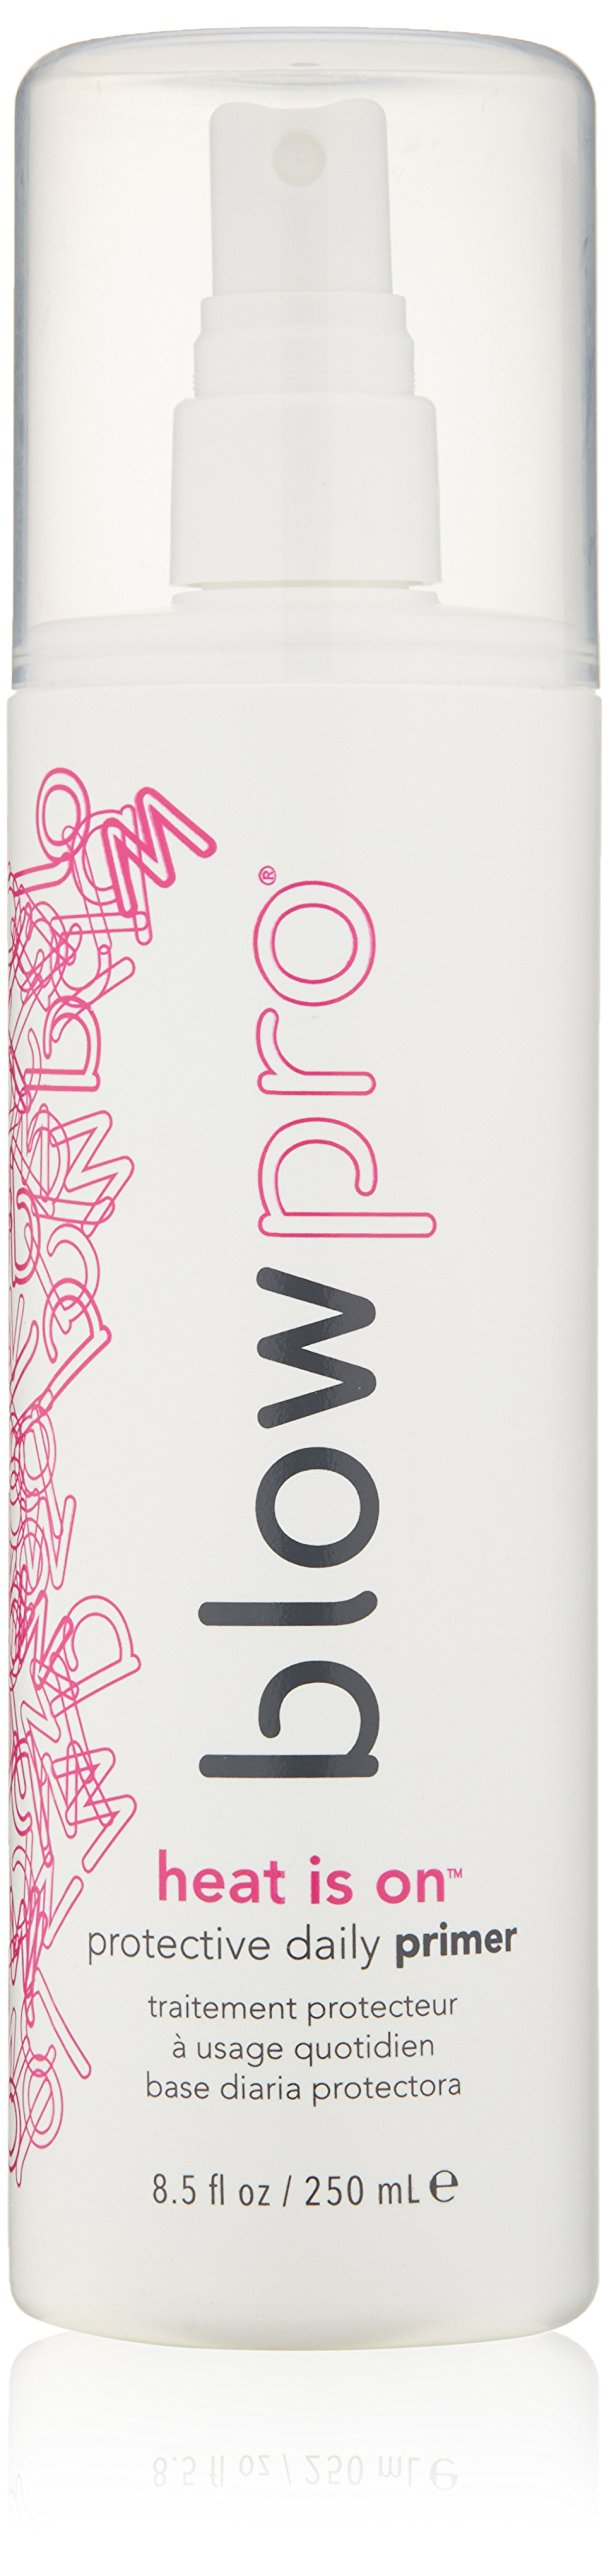 blowpro Heat Is On Protective Daily Primer